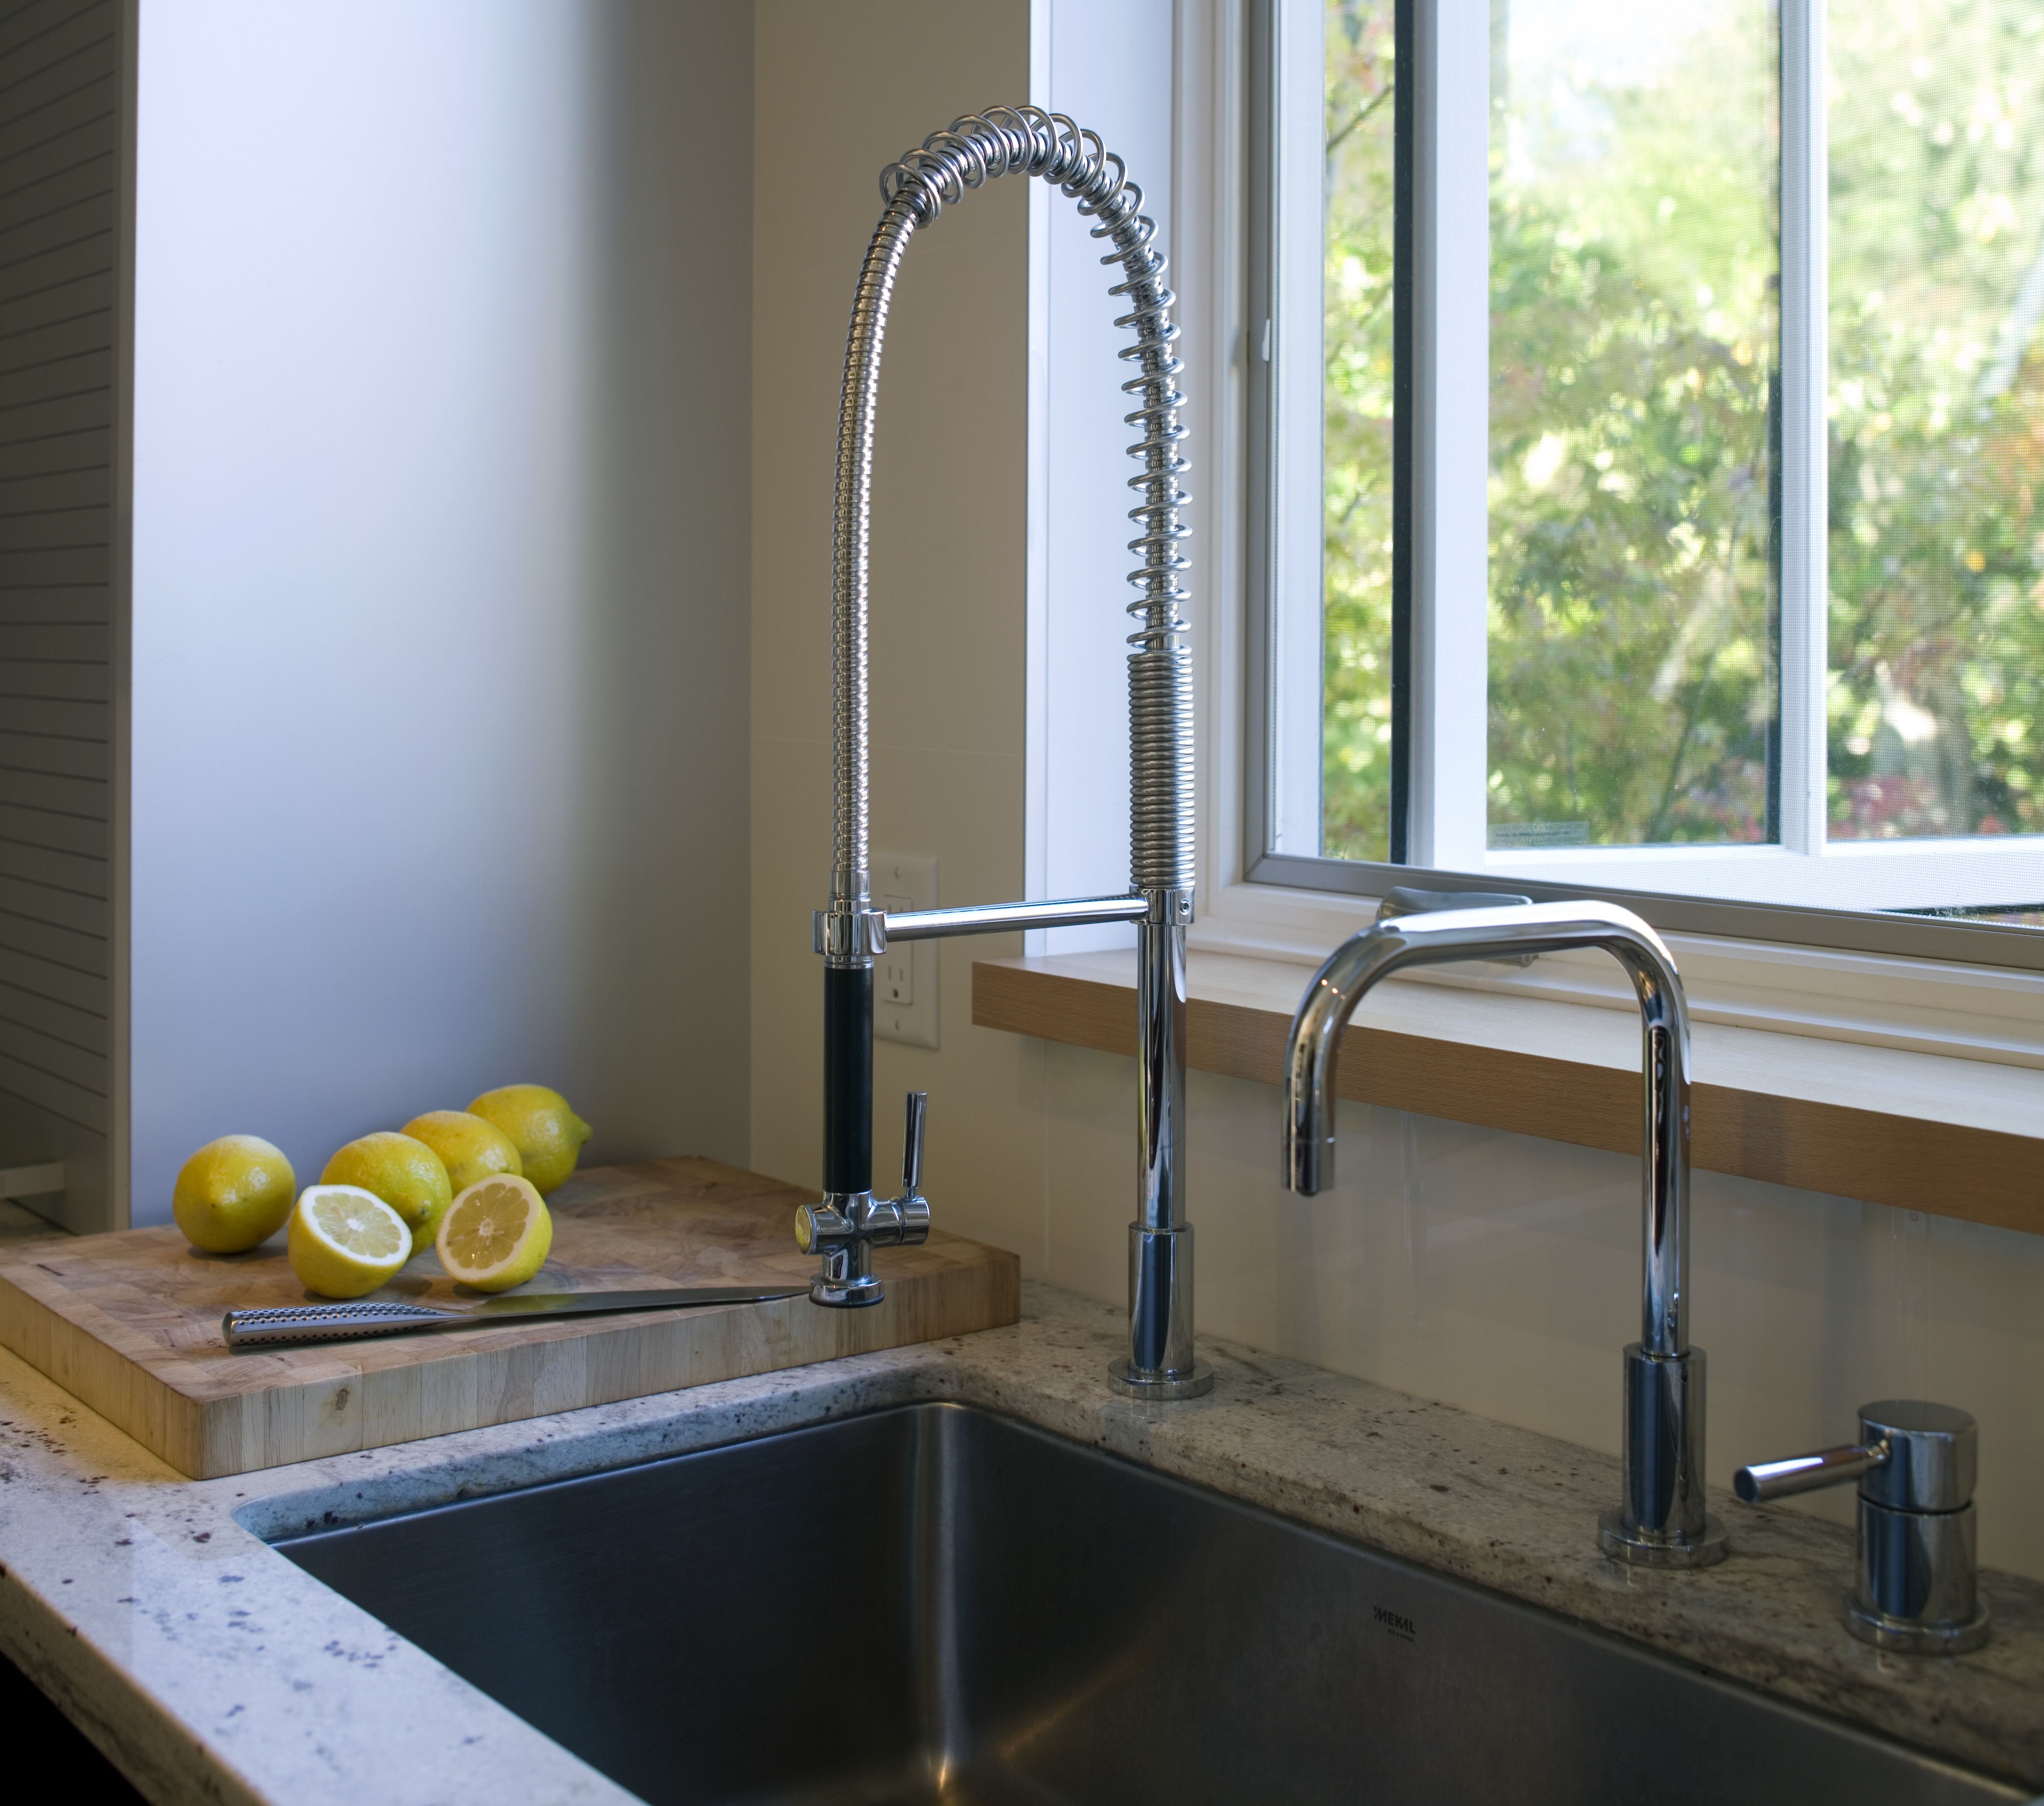 sink installation cost guide cost to install a kitchen sink kitchen remodel cost kitchen remodel kitchen renovation